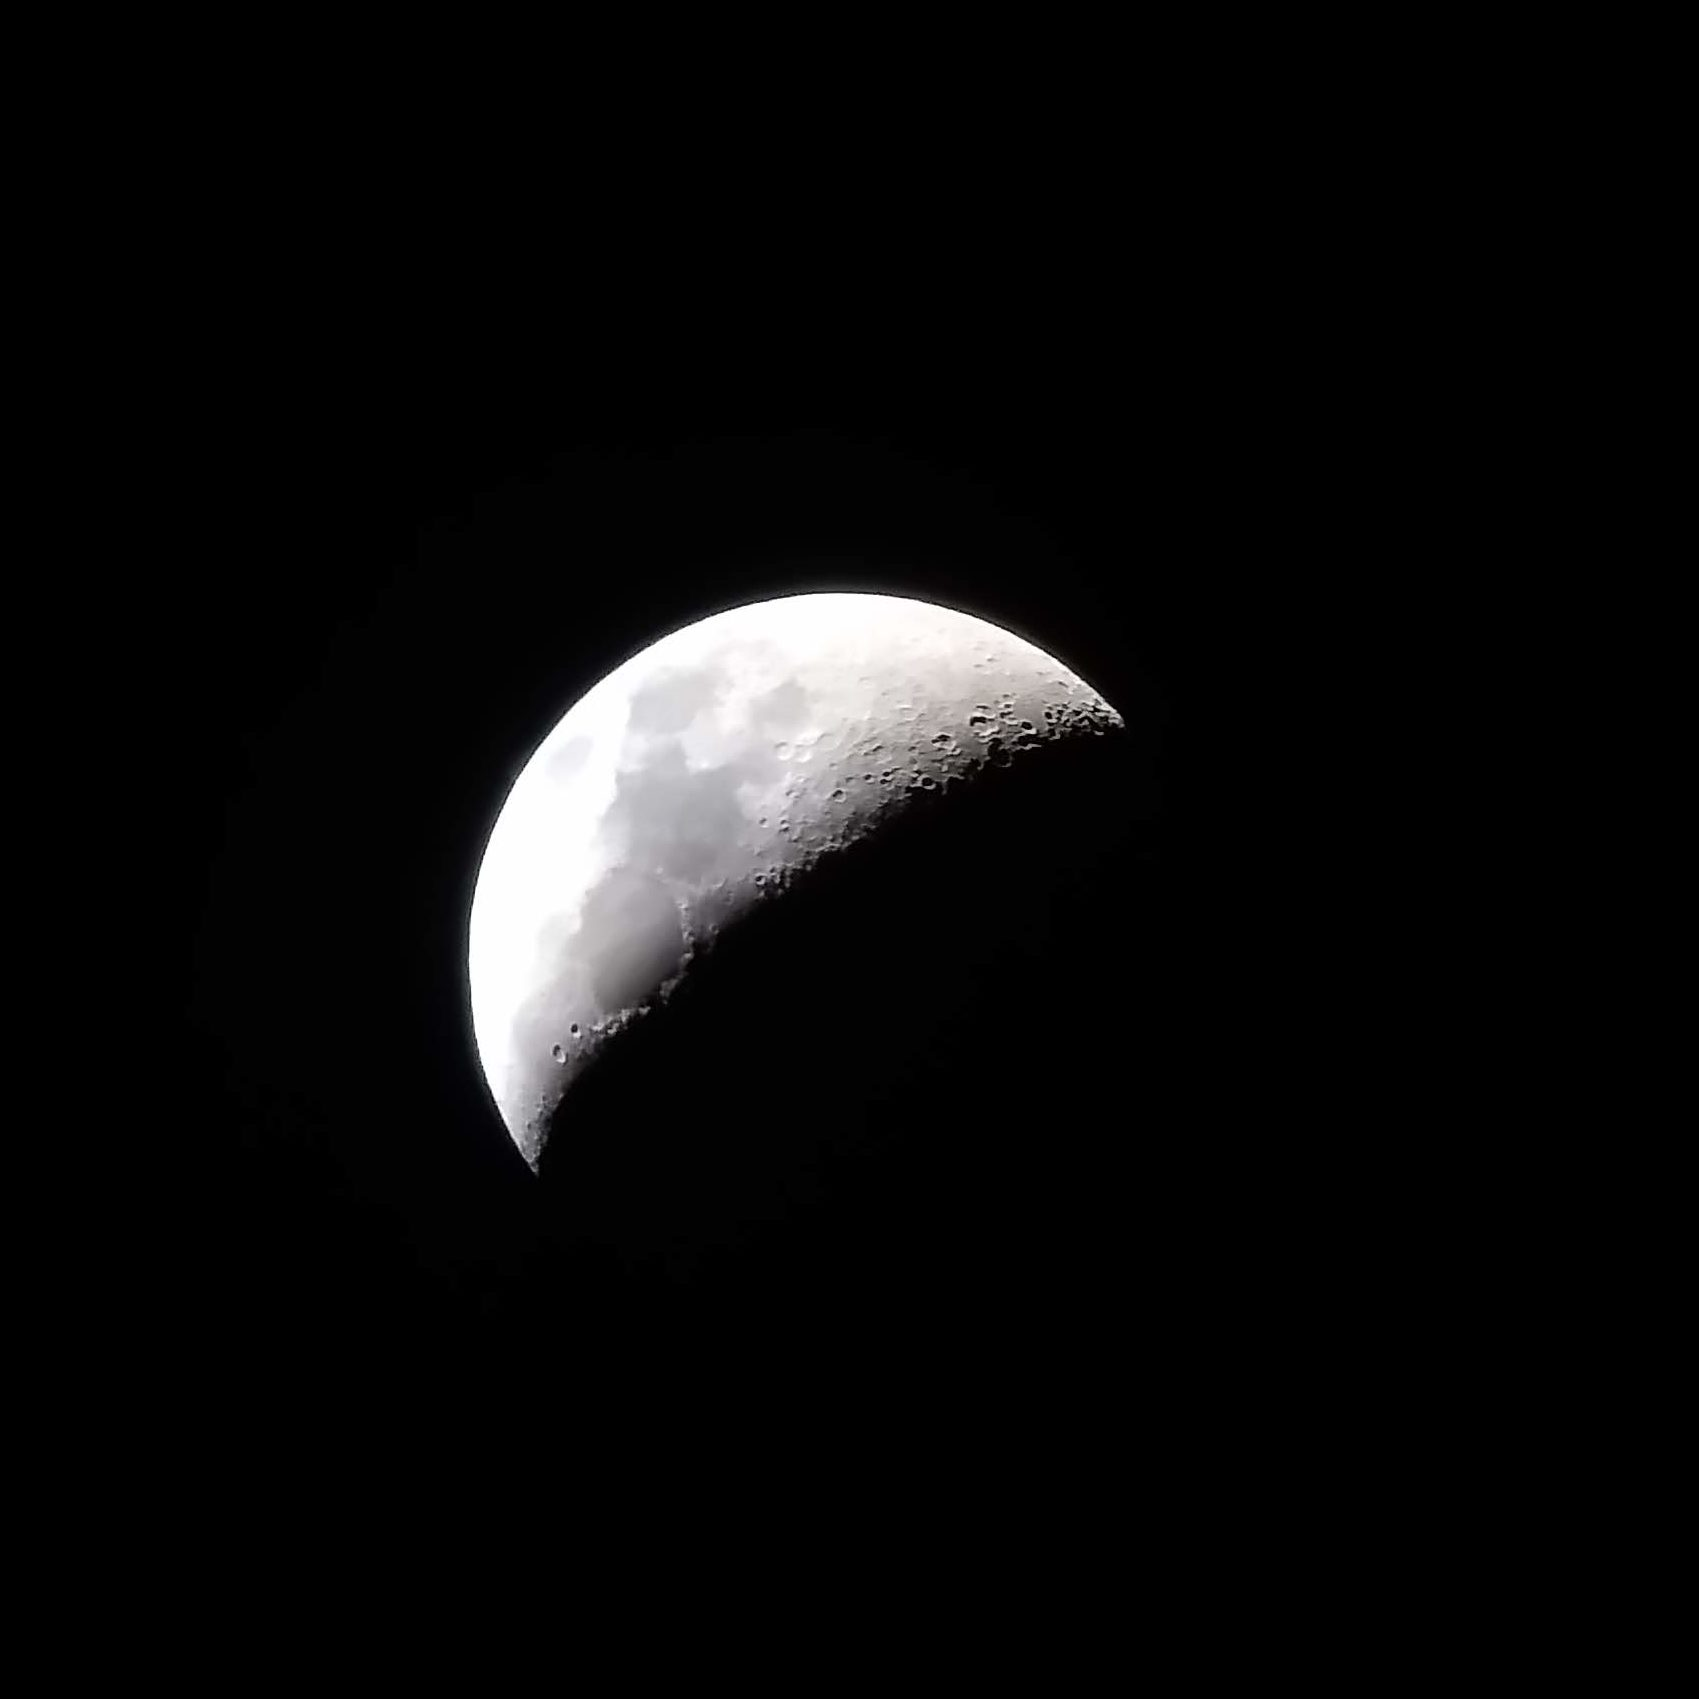 Quarter moon picture taken through a telescope